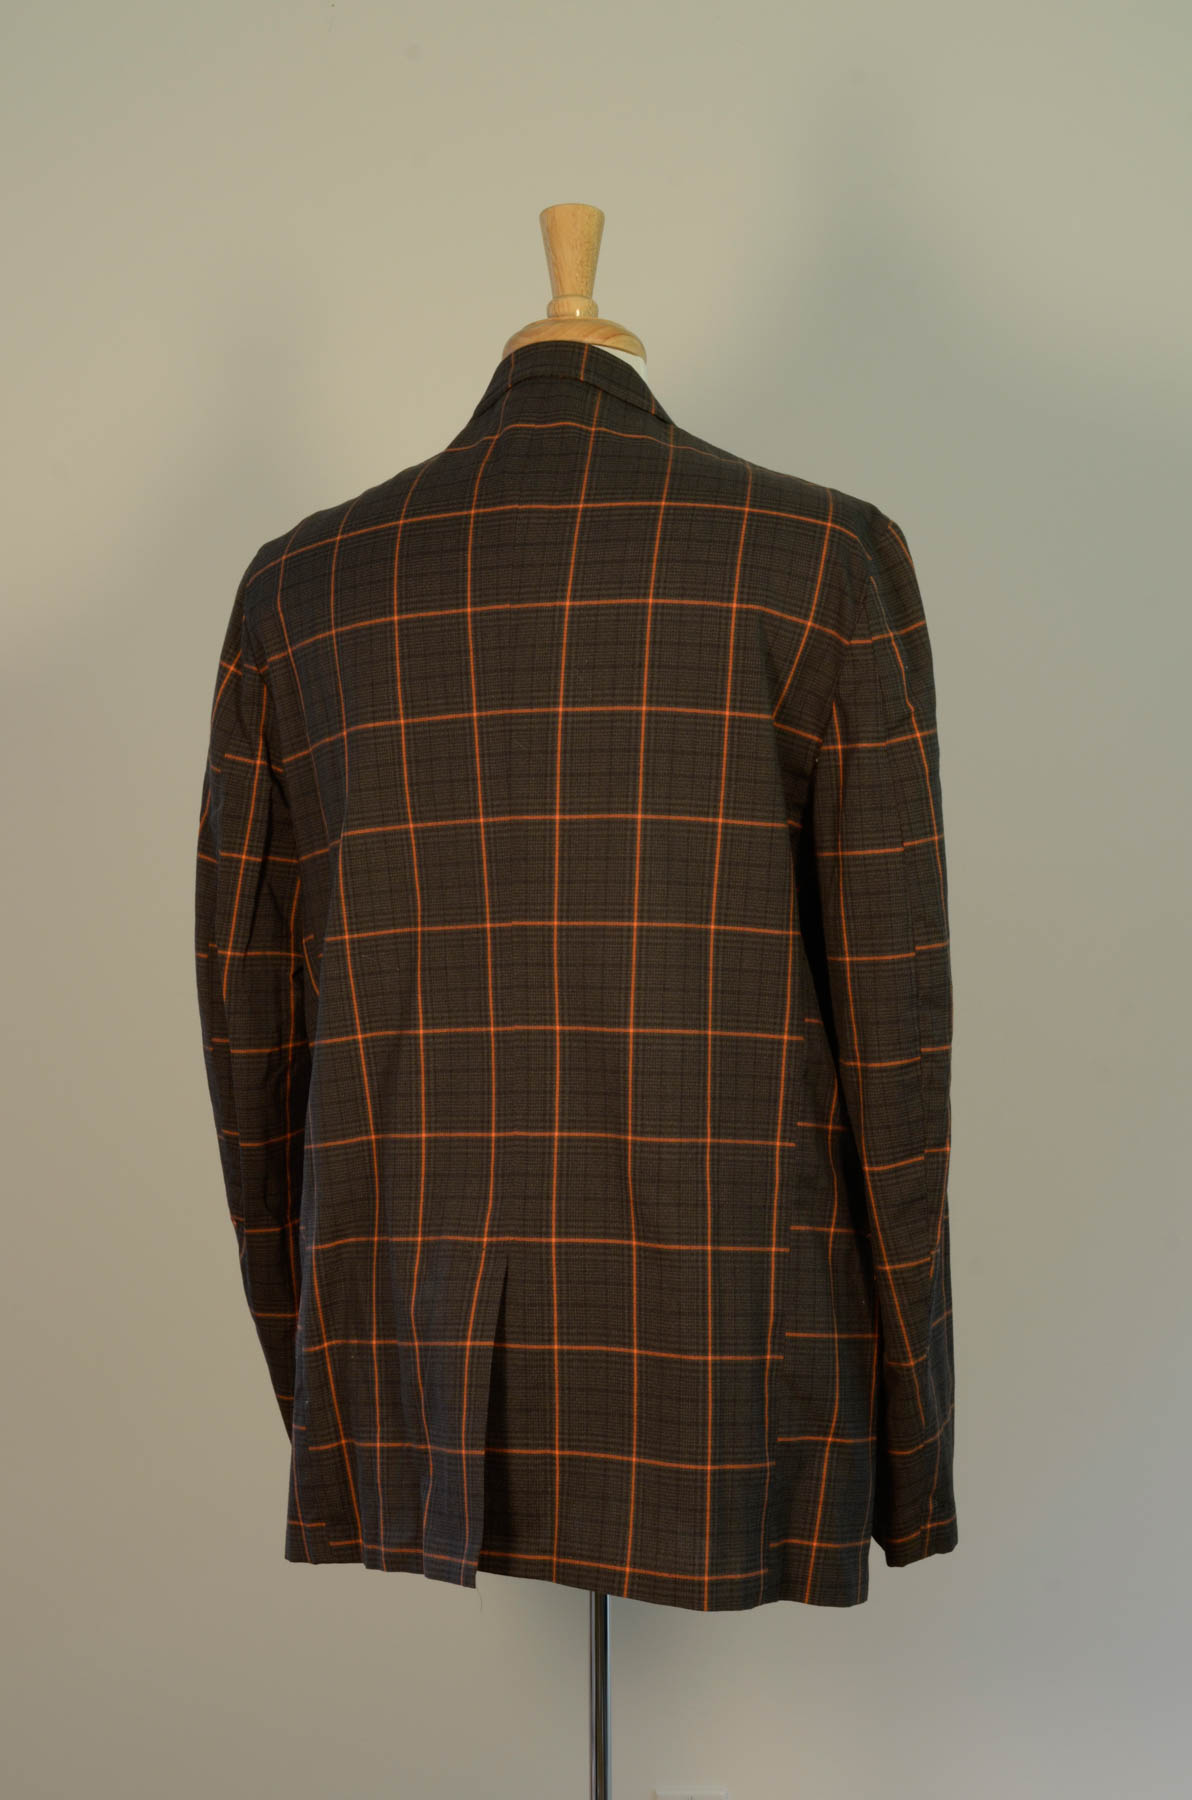 Reunion Jacket 1942 Variation 1 Rear